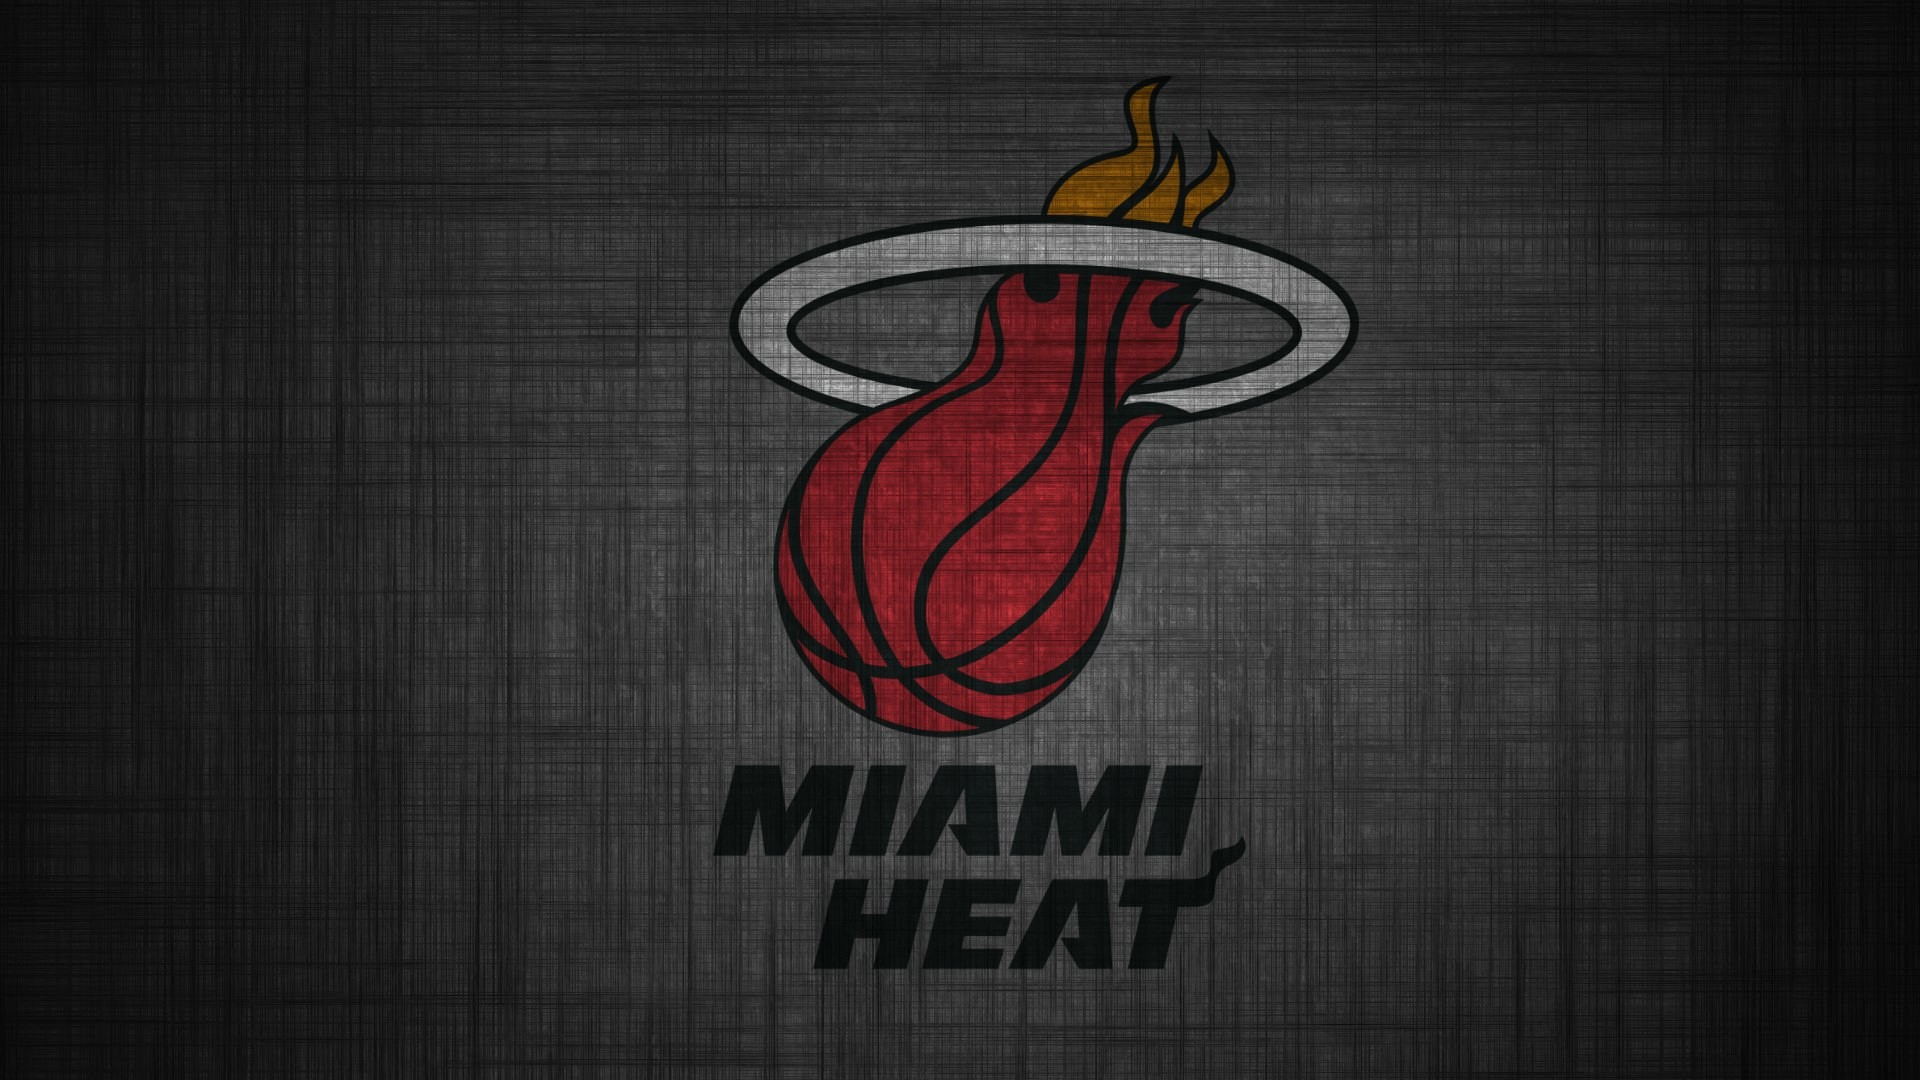 Miami Heat Screensavers and Wallpaper (83+ images)